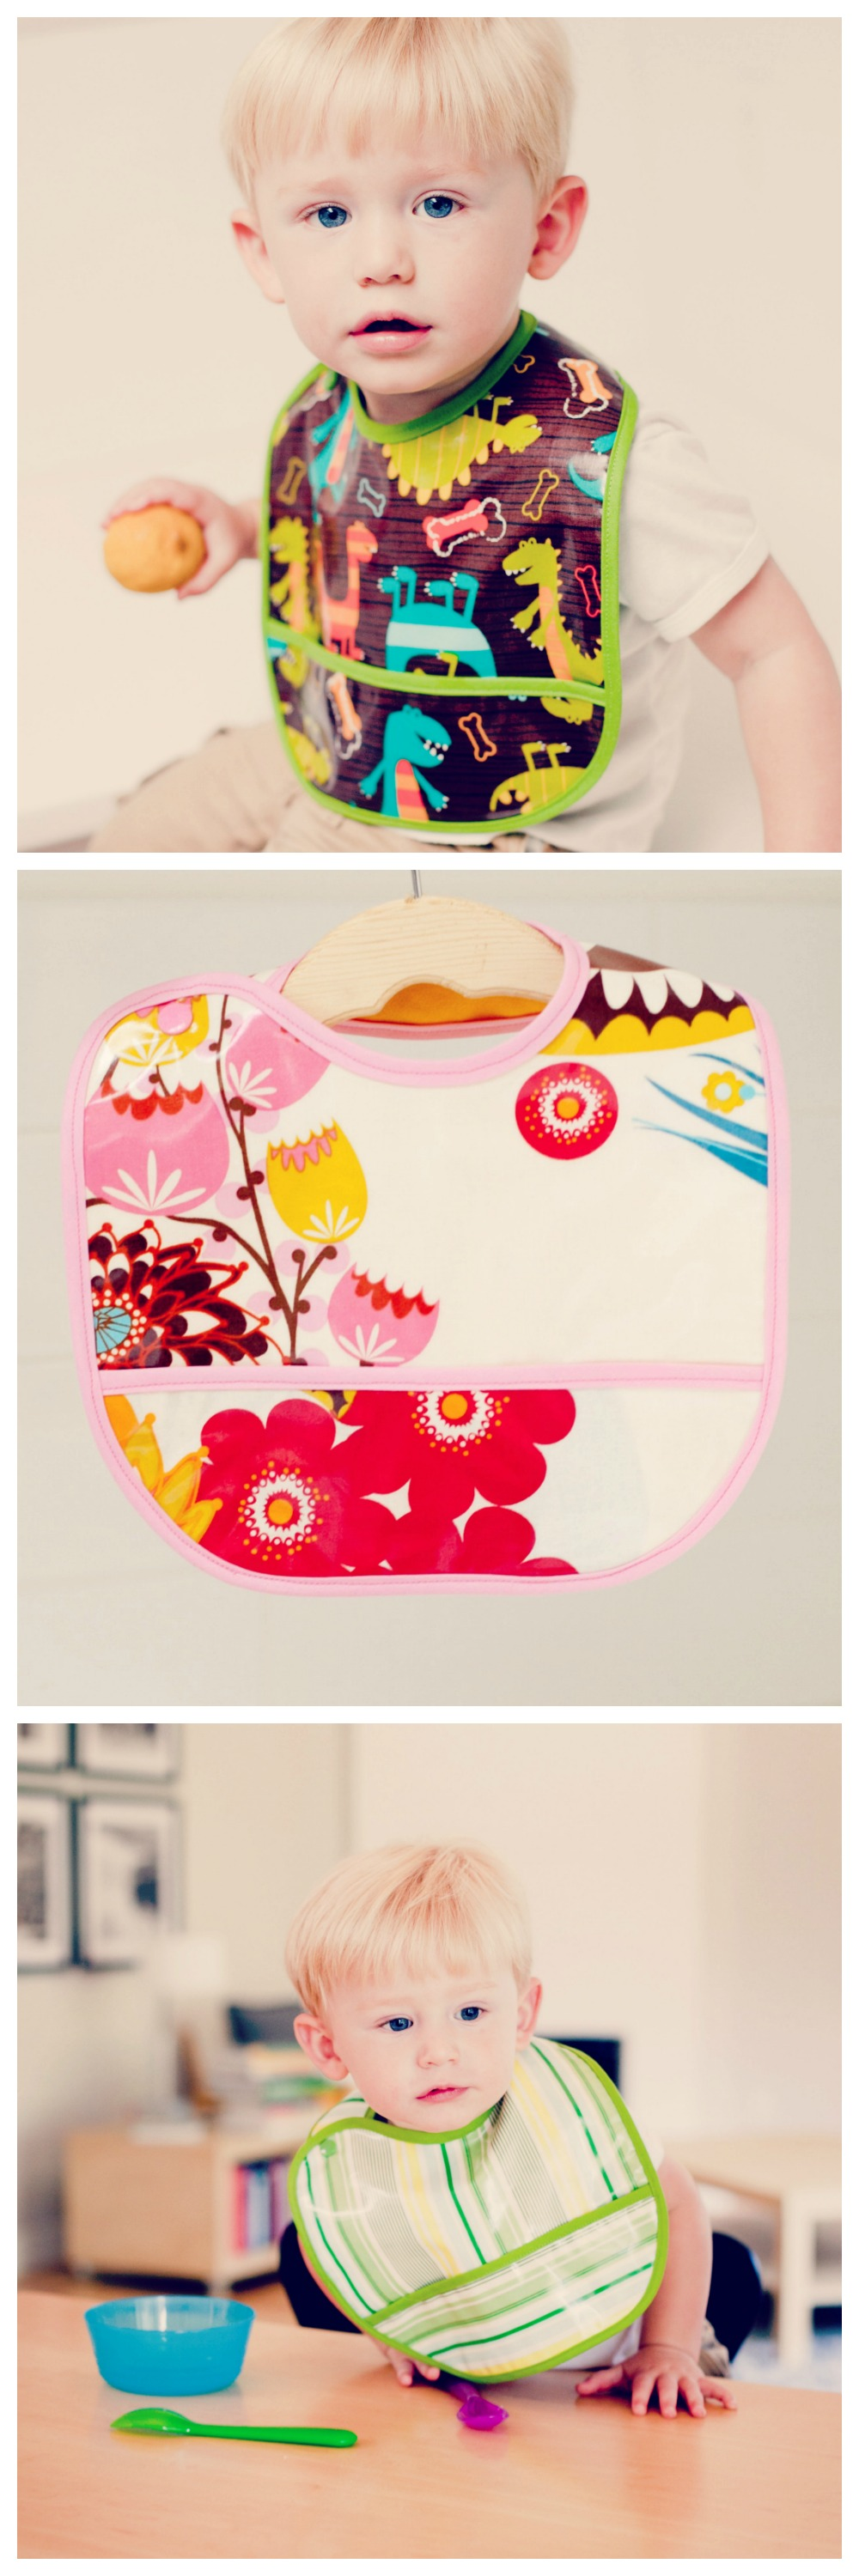 Waterproof laminated cotton and flannel child's pocket bibs, mealtime and travel solutions